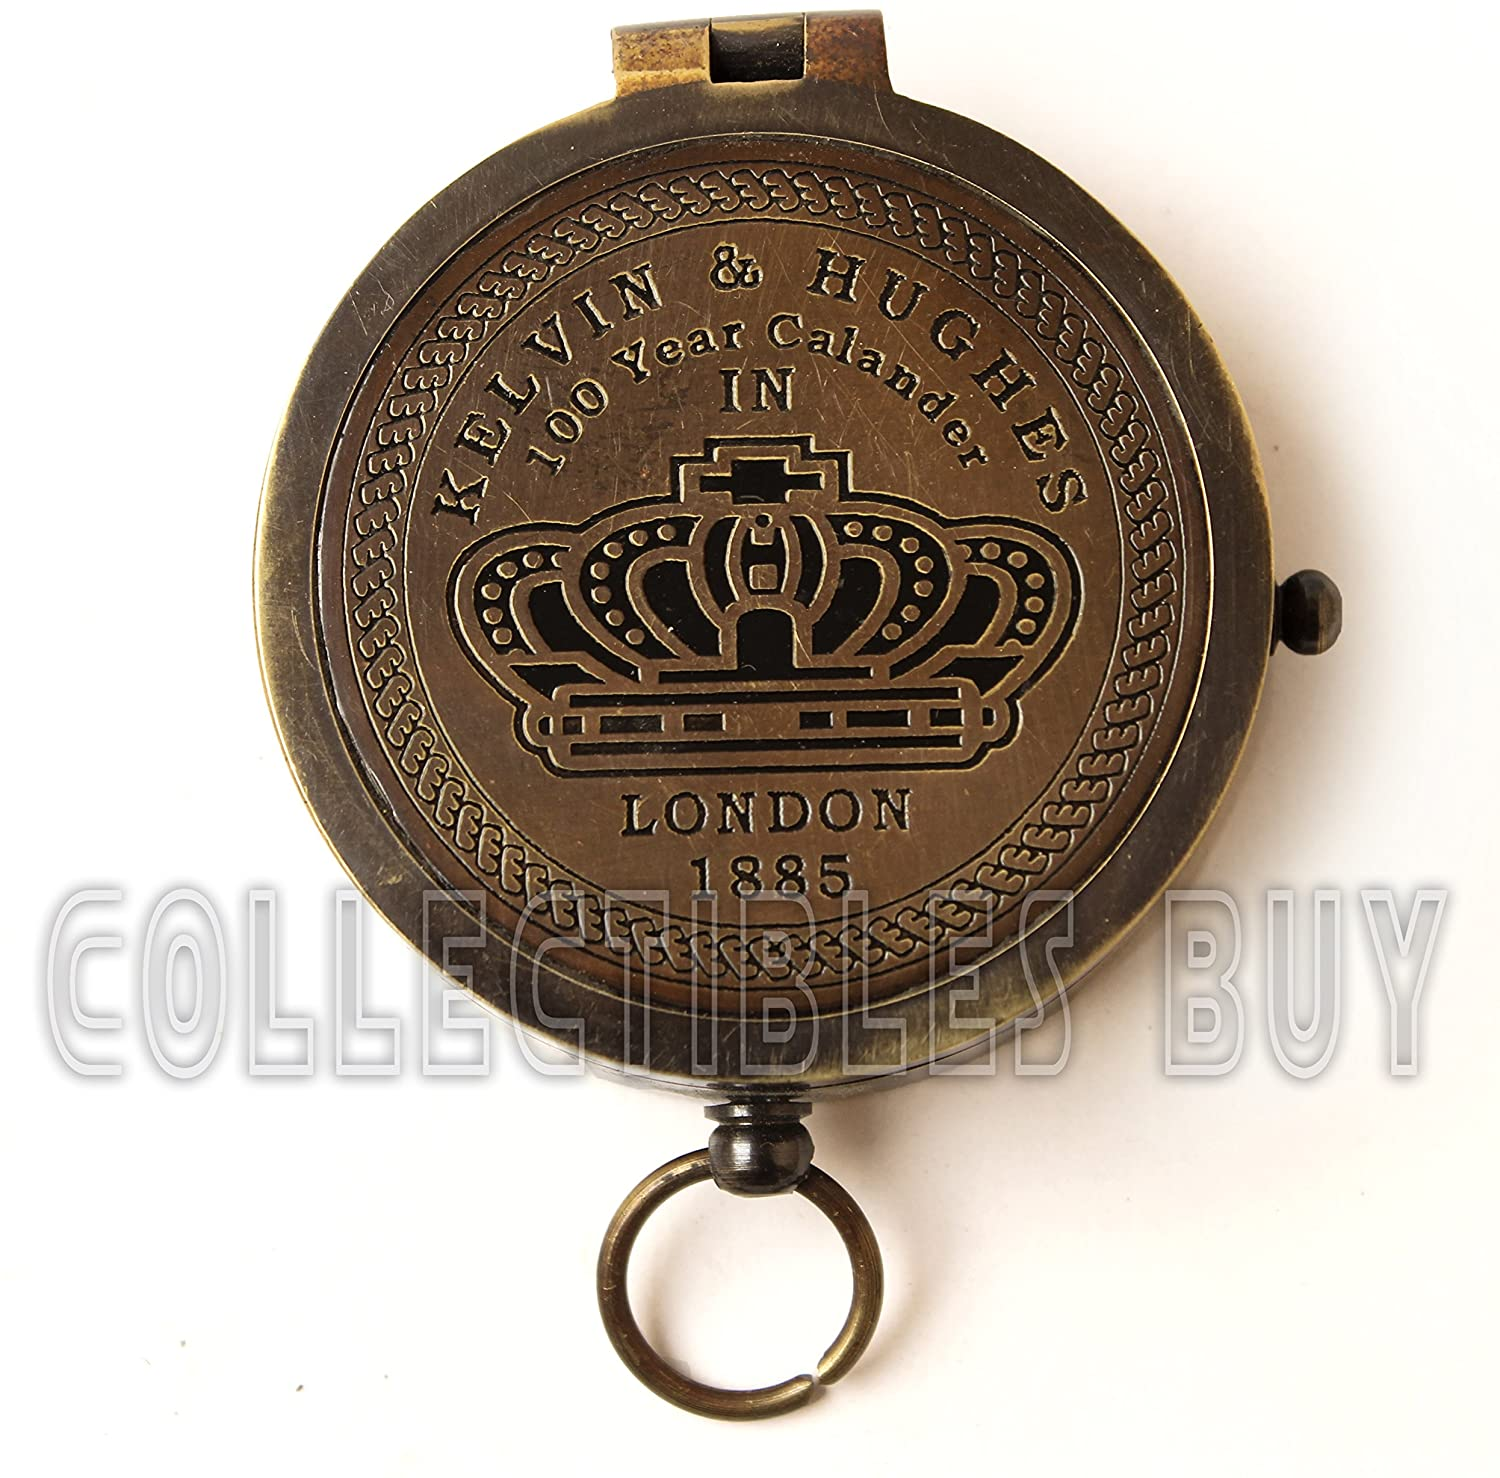 collectiblesBuy Brass Compass Vintage Finish Kelvin Hughes 100 Year Calendar Compasses lid Compass